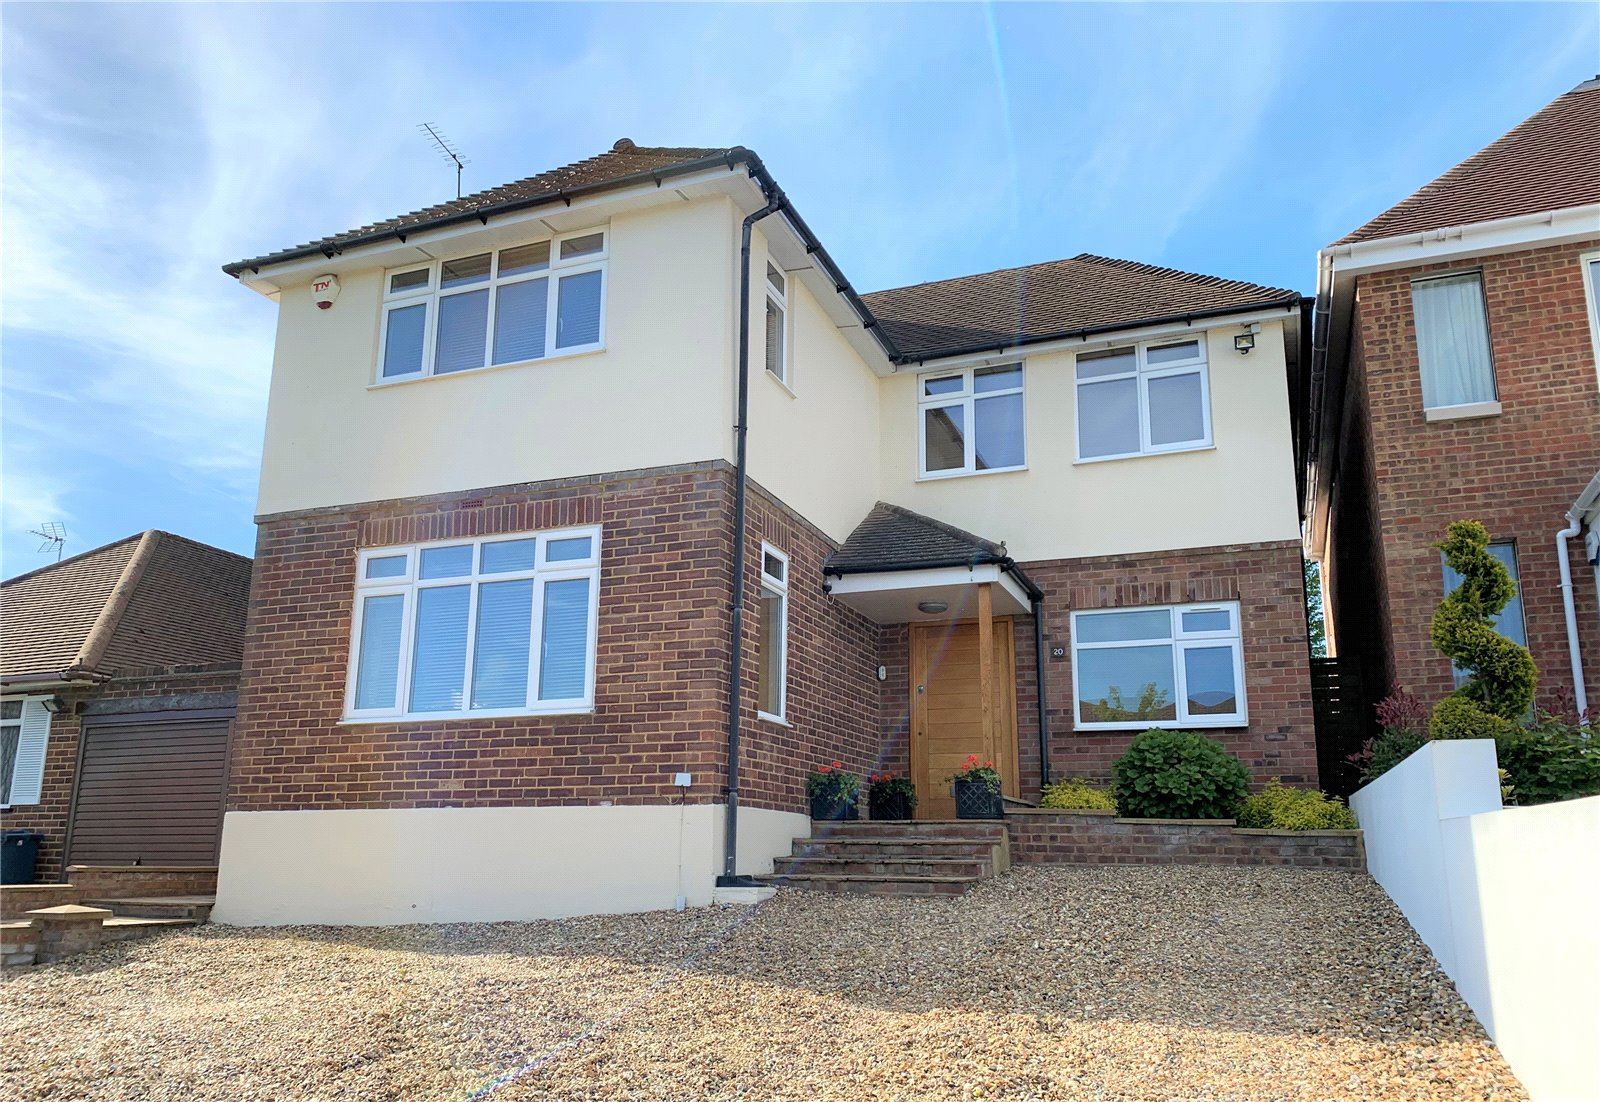 4 bed house for sale in Stanmore, HA7 3AZ  - Property Image 1